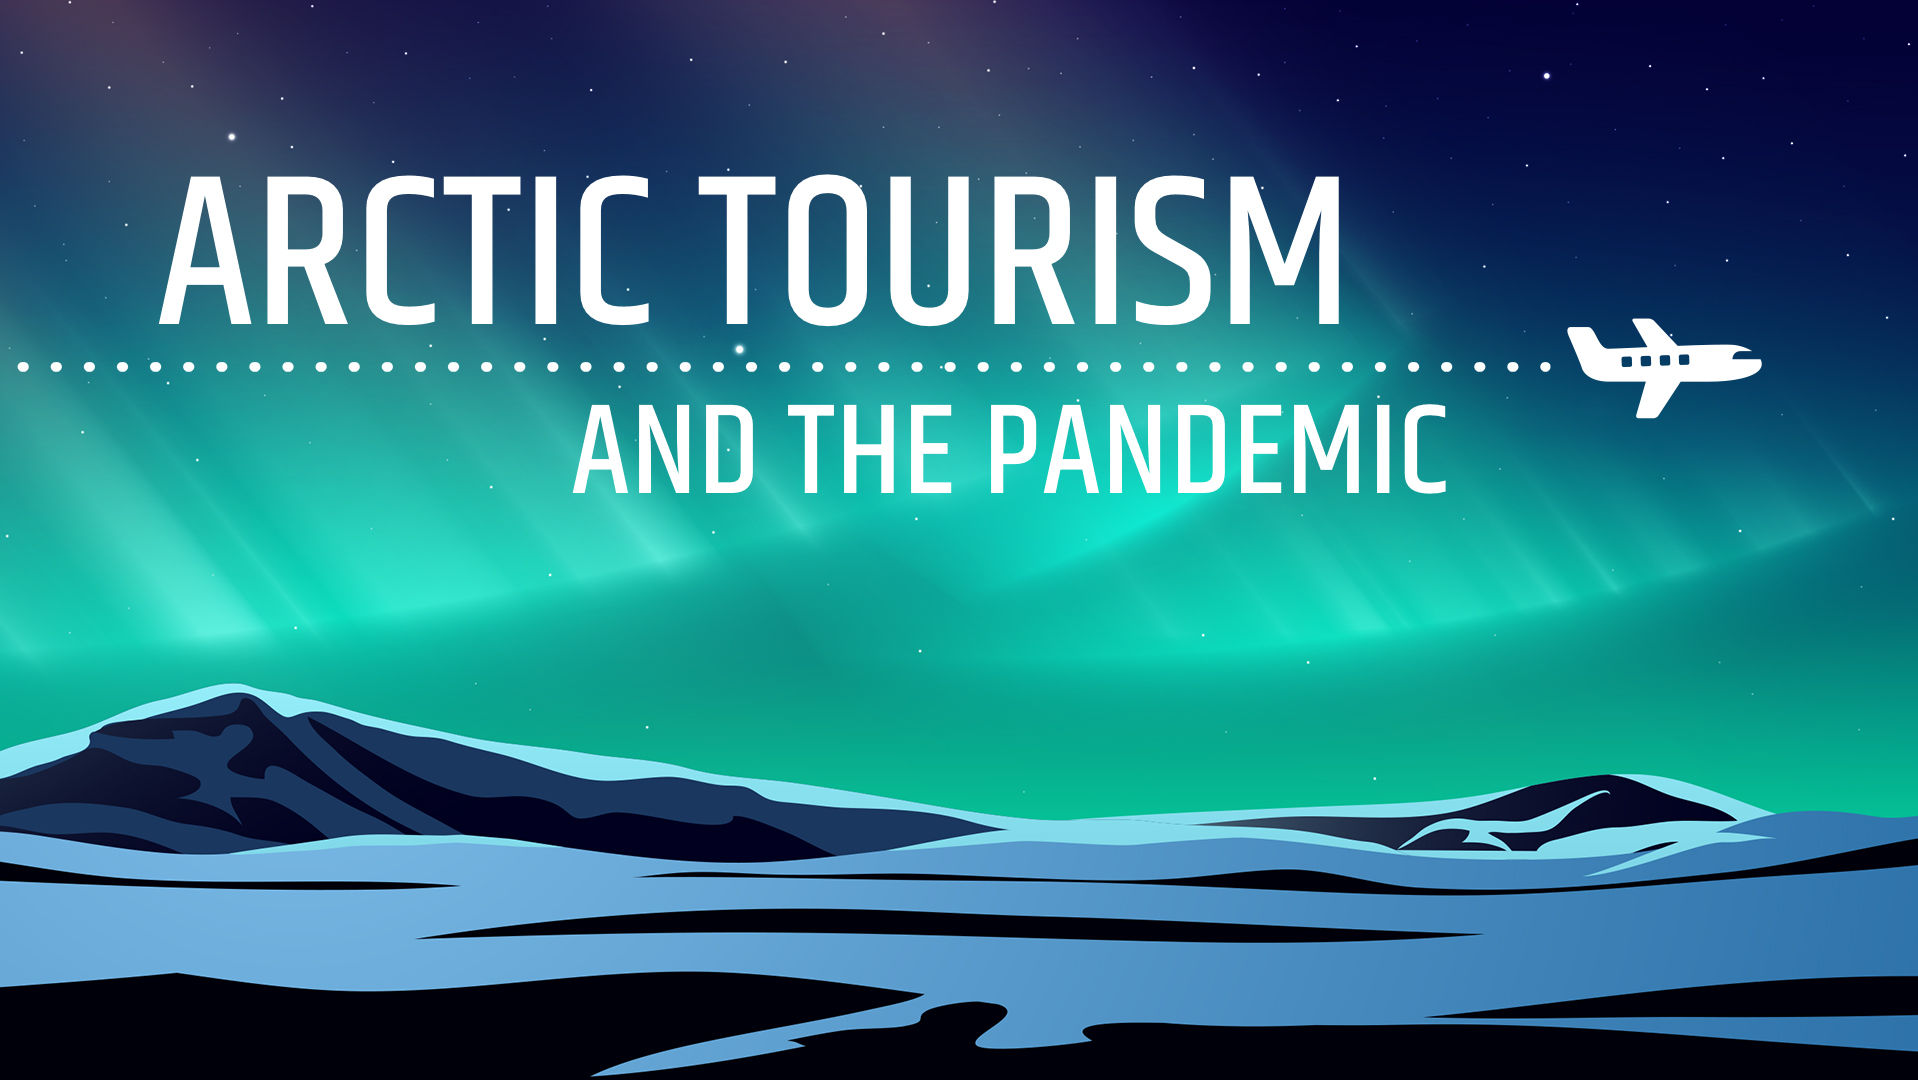 ARCTIC TOURISM AND THE PANDEMIC